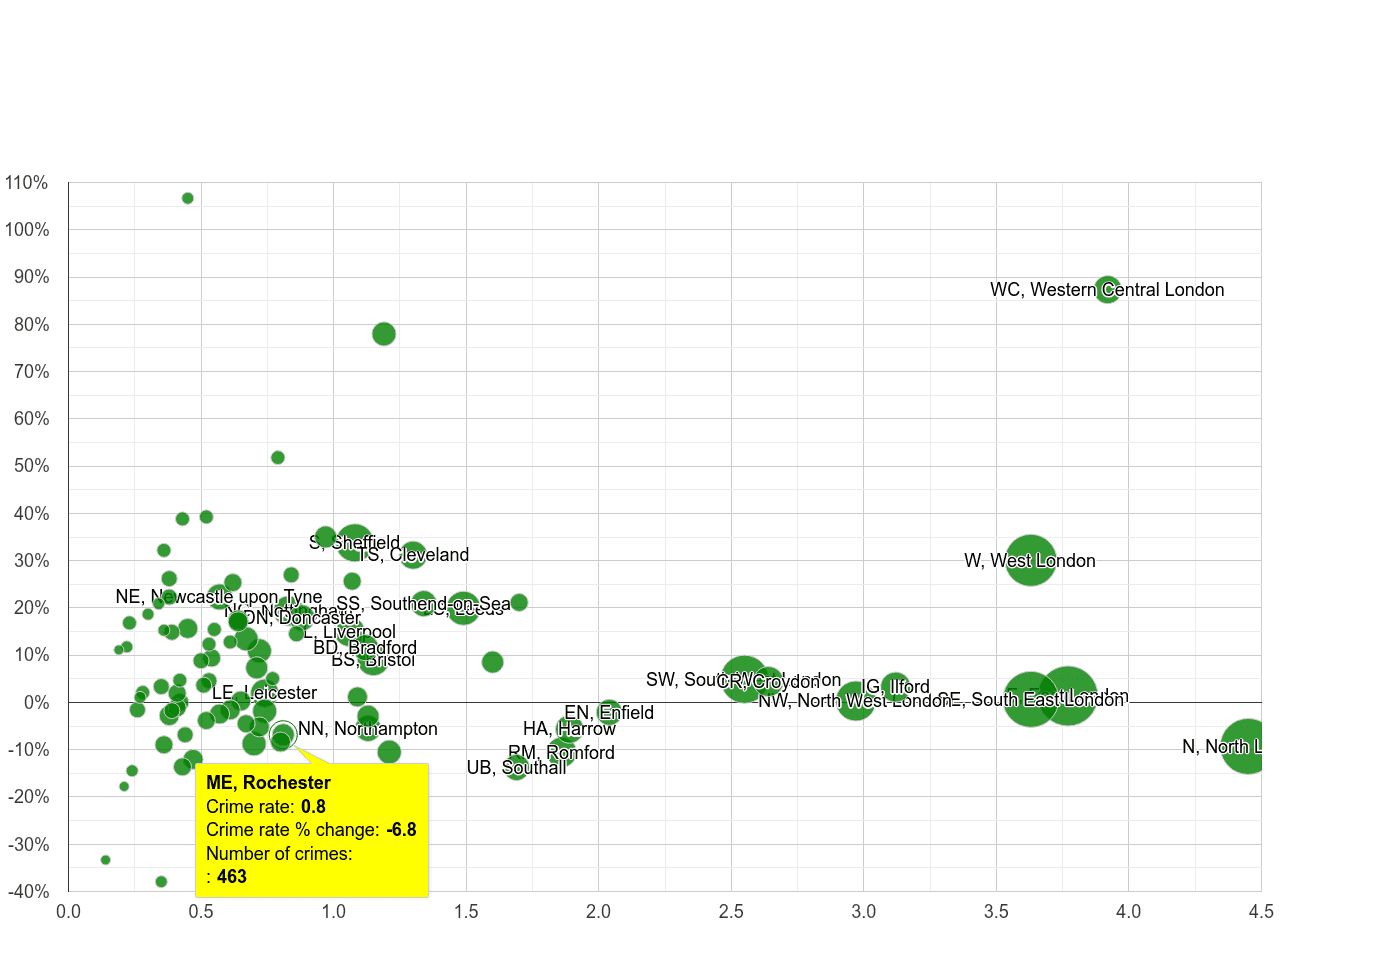 Rochester robbery crime rate compared to other areas